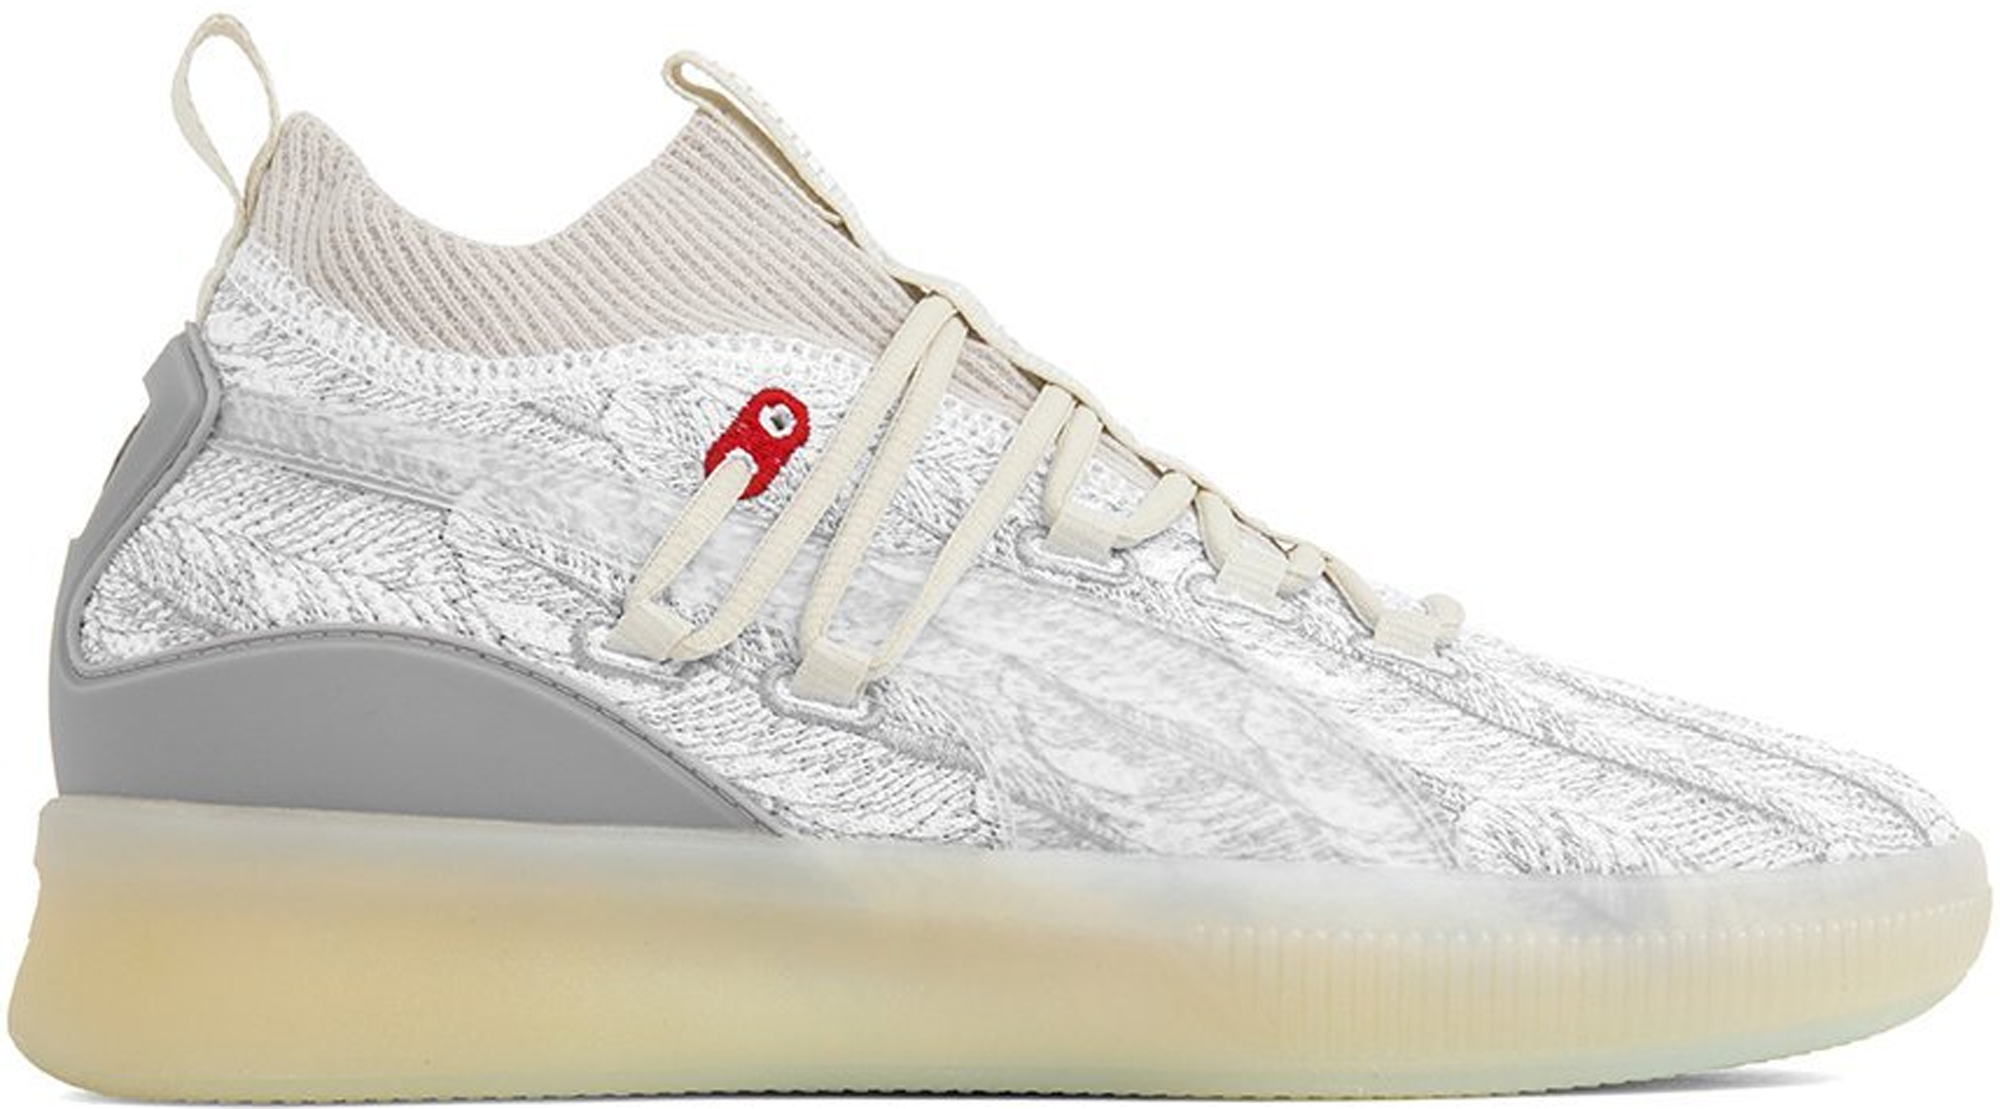 Puma Clyde Court Disrupt Peace On Earth